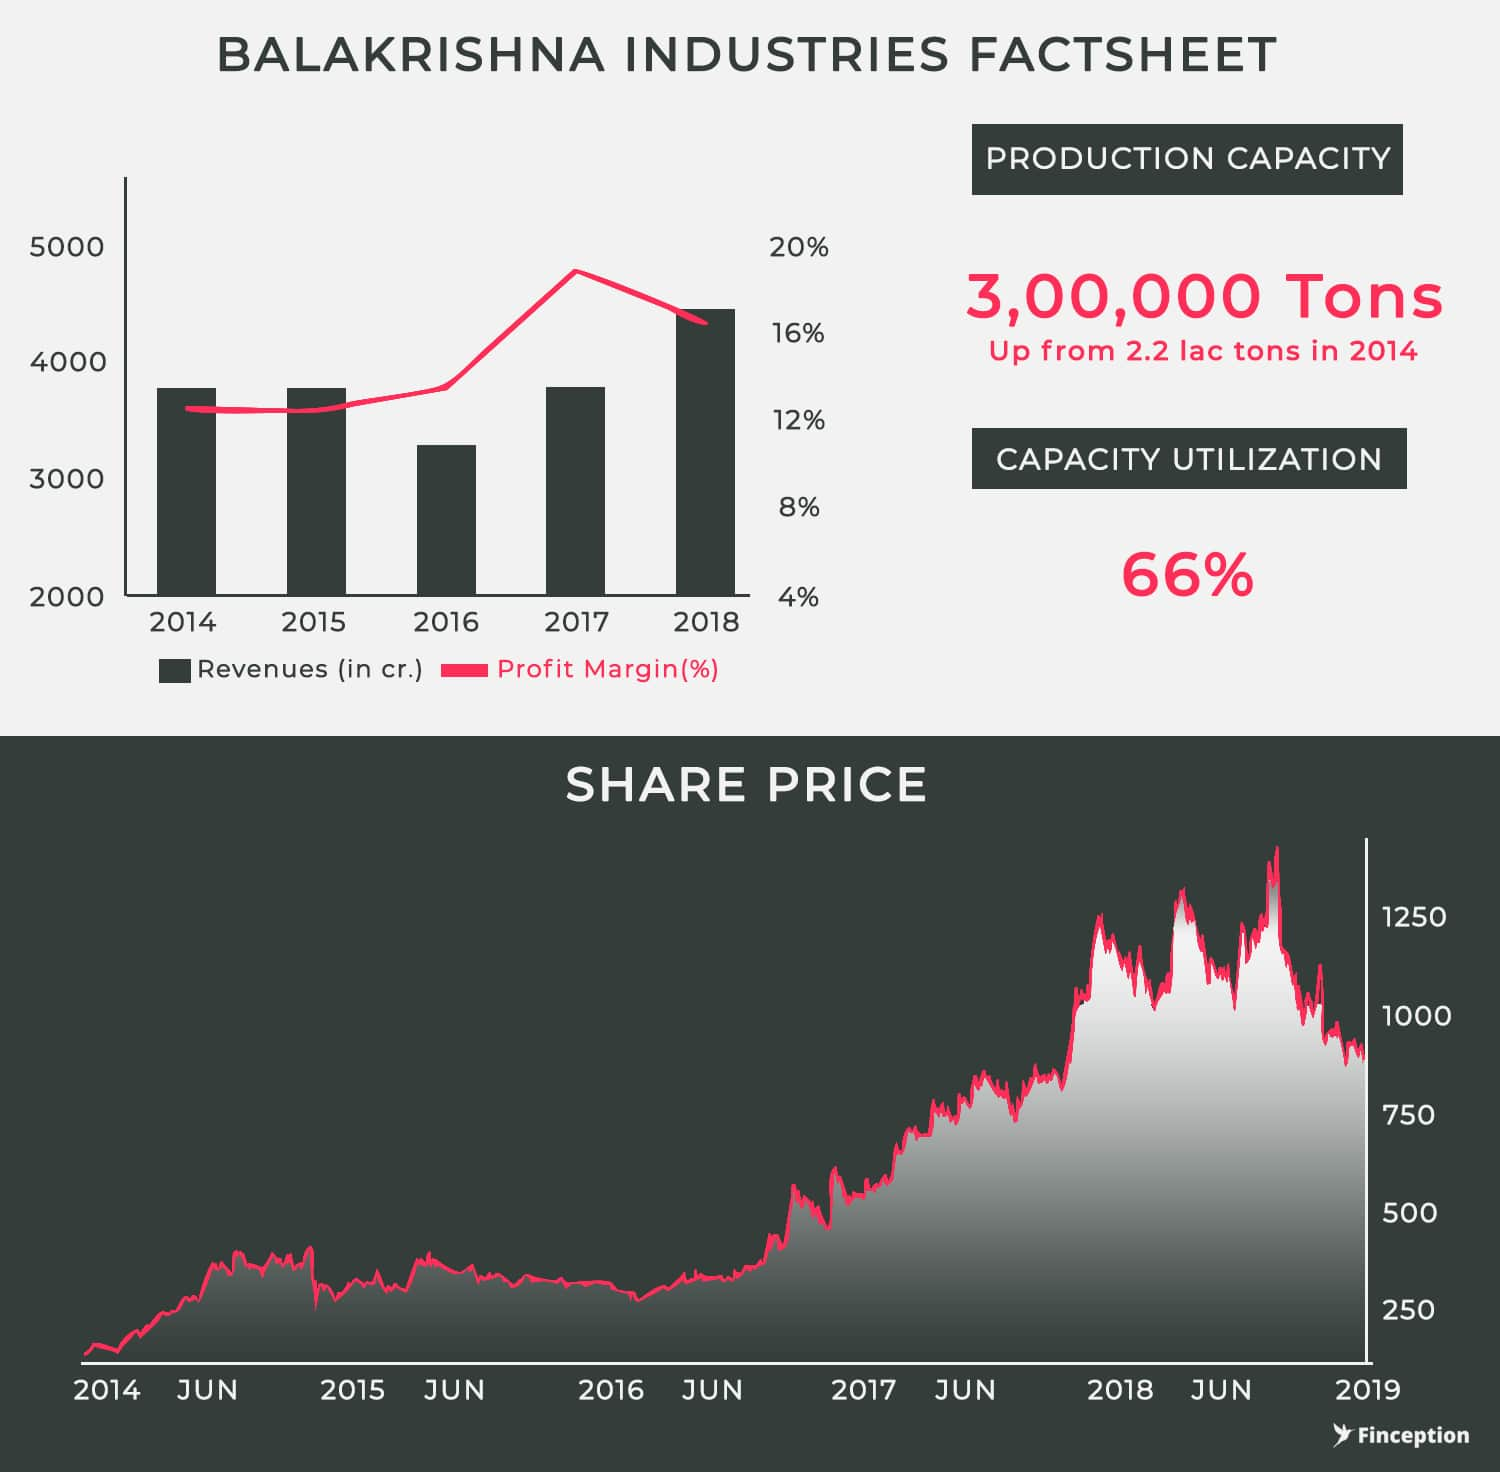 Balkrishna Industries Factshseet